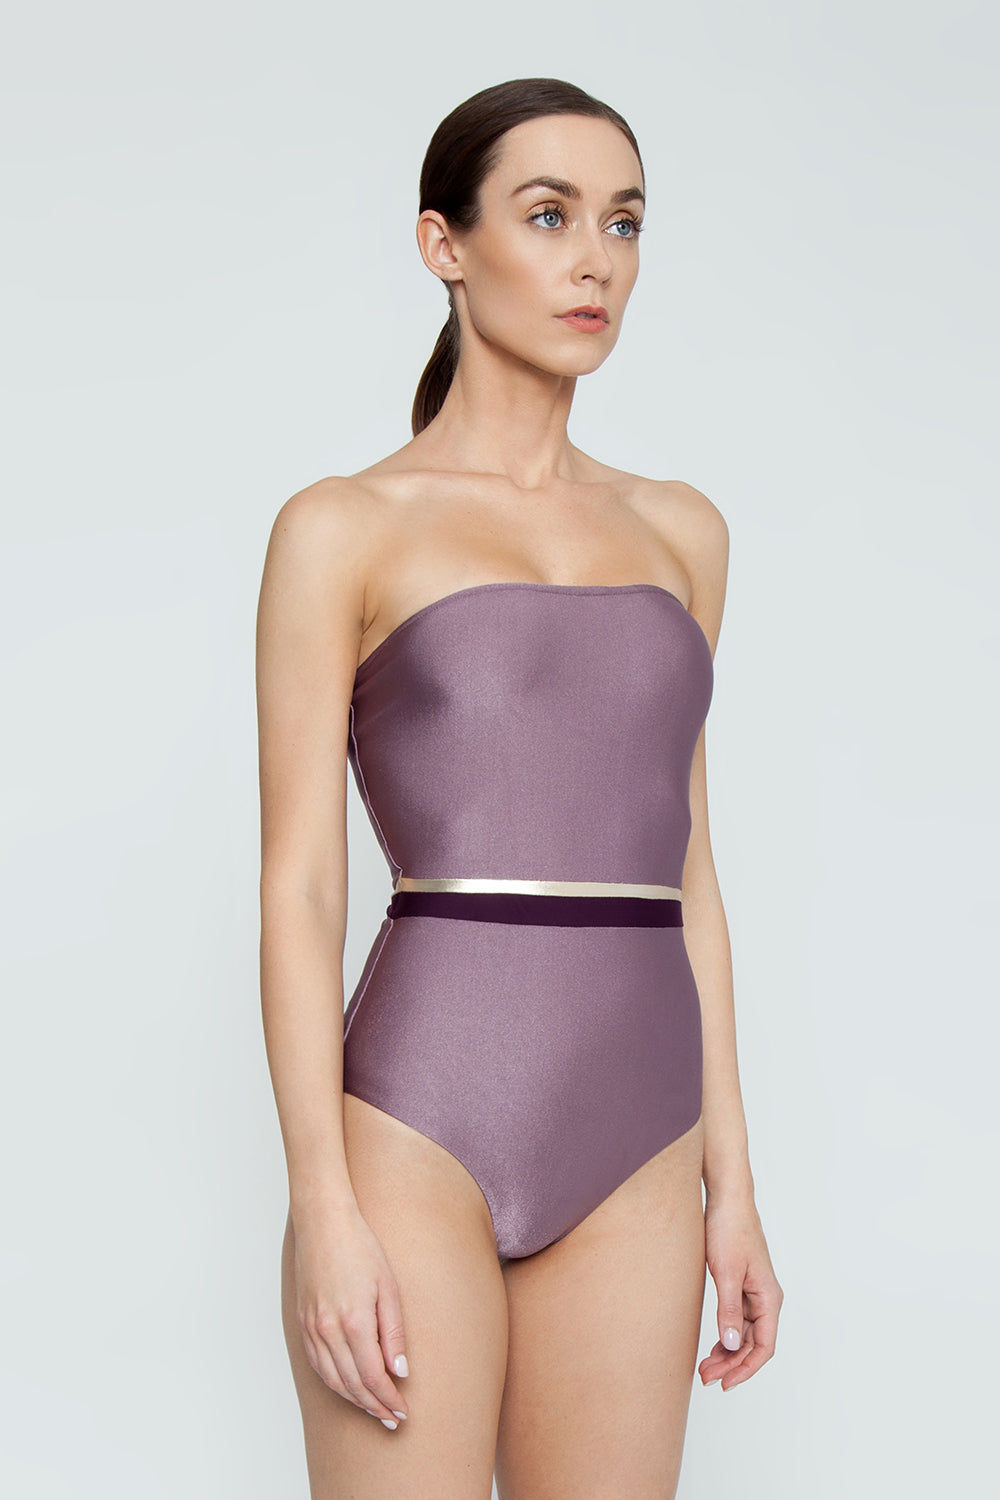 ADRIANA DEGREAS Strapless One Piece Swimsuit - Tricolor Lilac/Purple/Gold One Piece | Tricolor Lilac/Purple/Gold| Adriana Degreas Tricolor Strapless One Piece Swimsuit - Lilac/Purple/Gold Strapless one piece  Metallic tricolor center band detail  Full coverage Side View